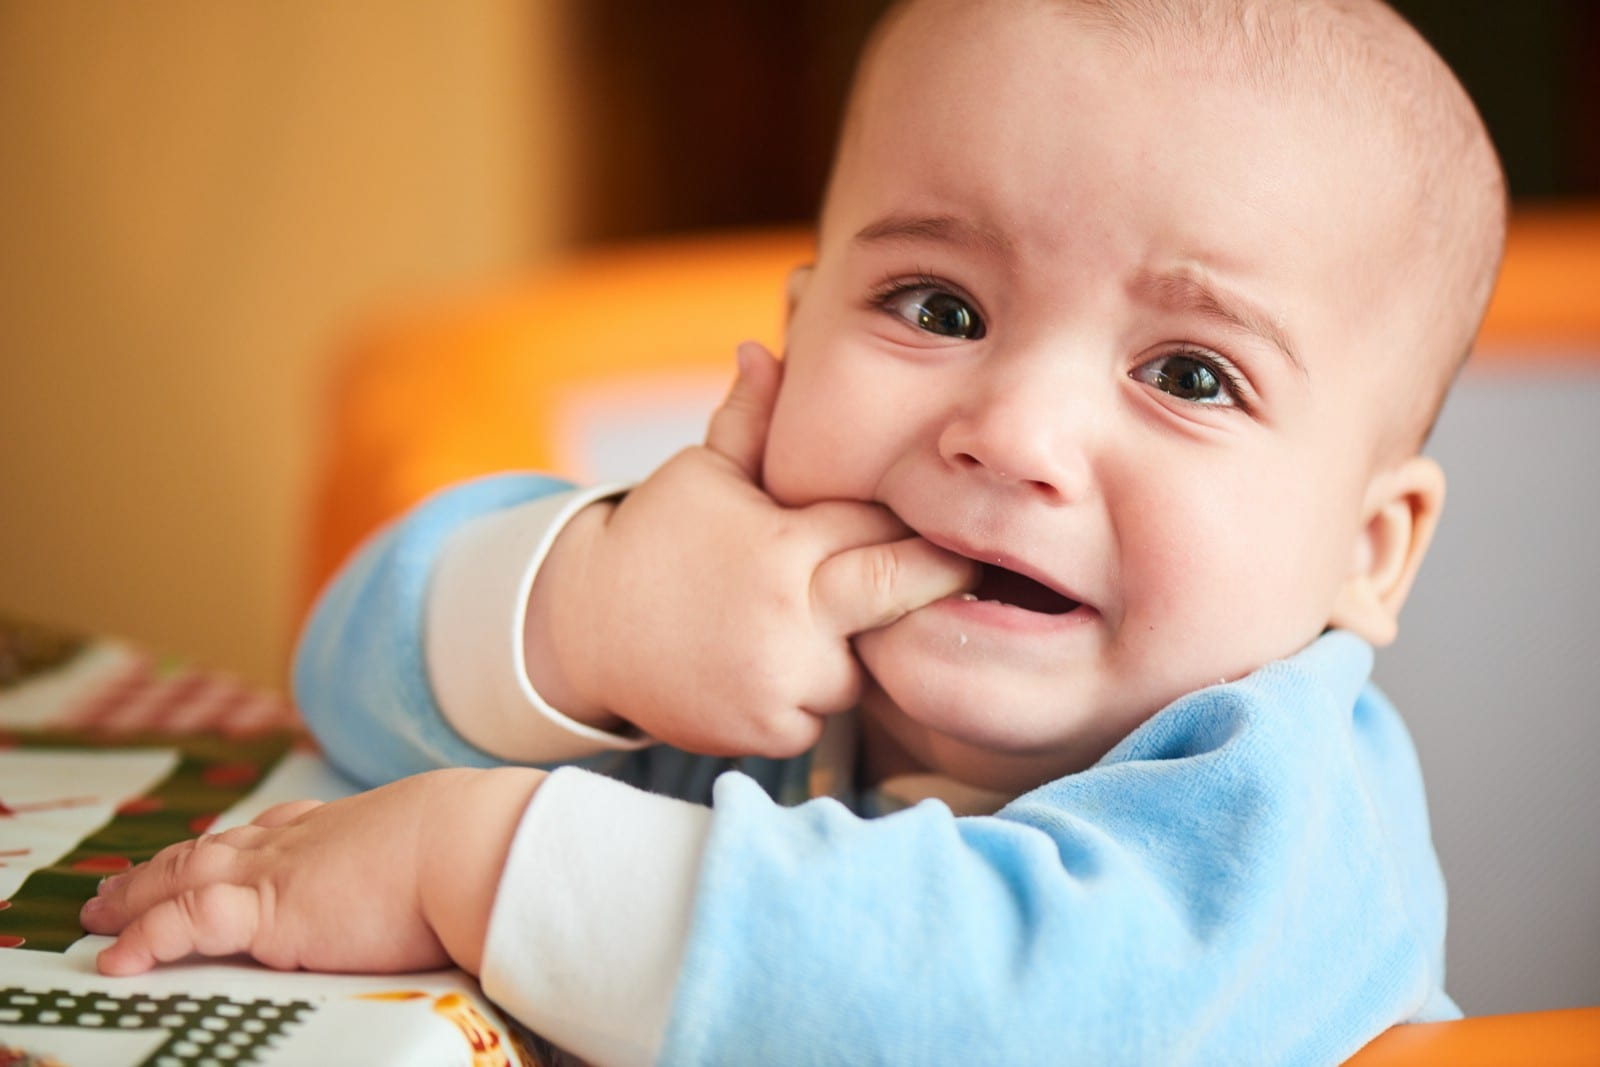 Does Teething Impact My Baby's Sleep?